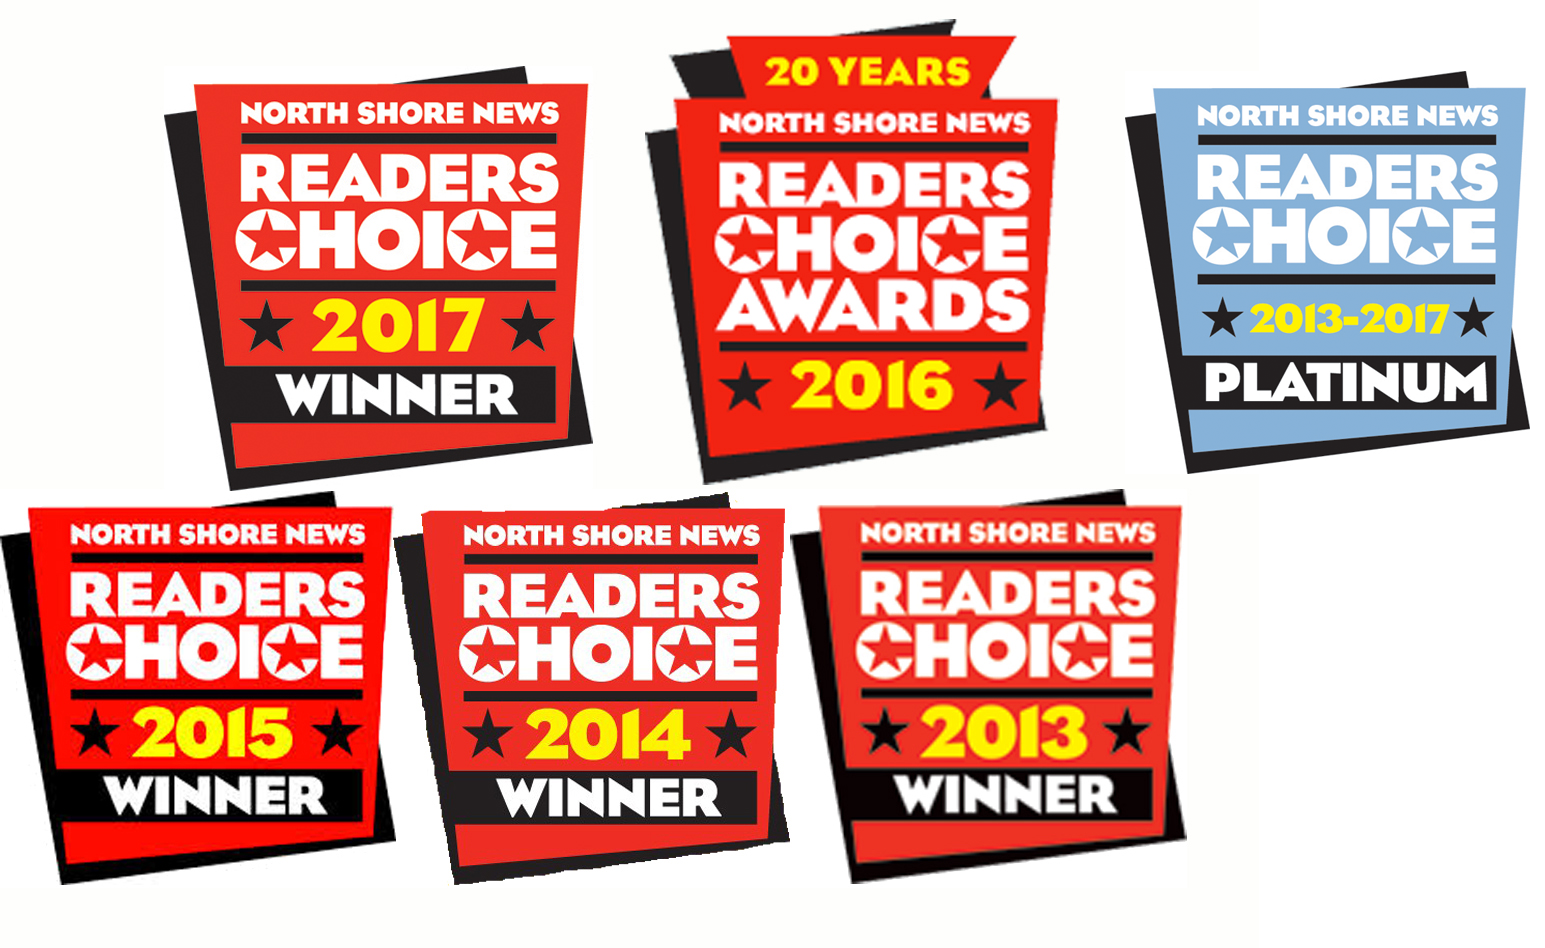 North Shore News Readers Choice